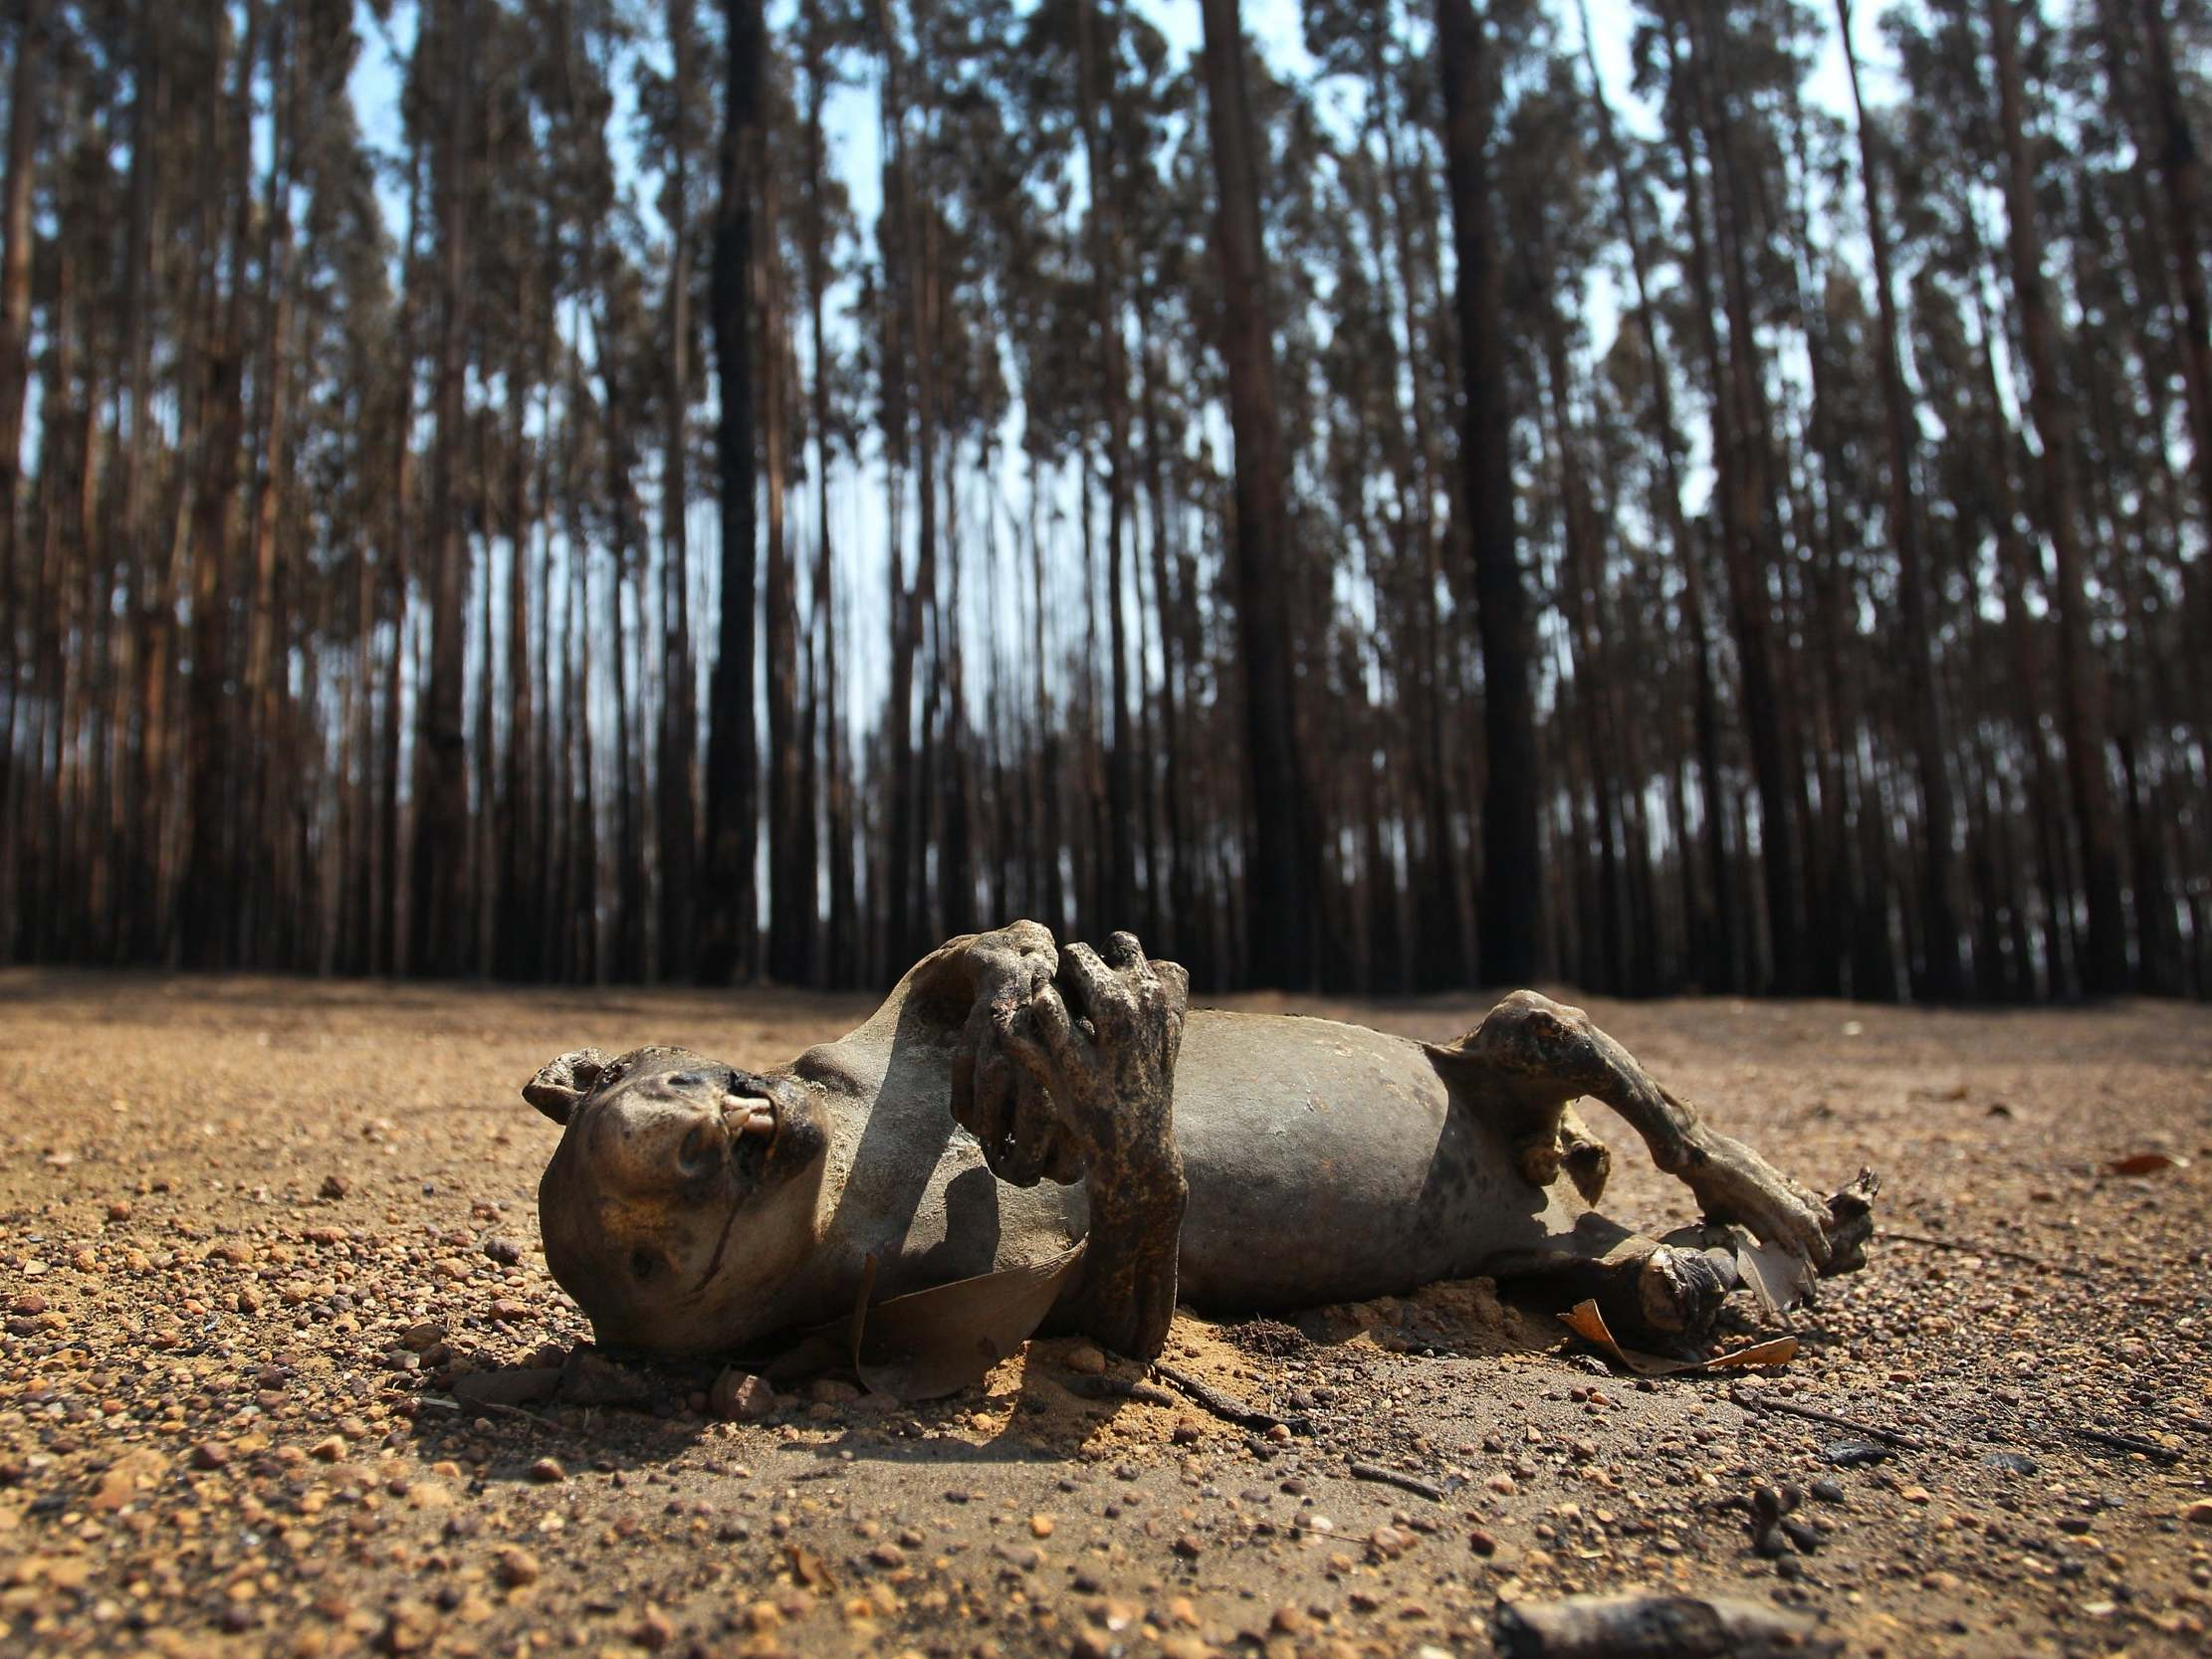 Australia wildfires: 'You can't walk 10 metres without coming across another carcass,' says animal charity